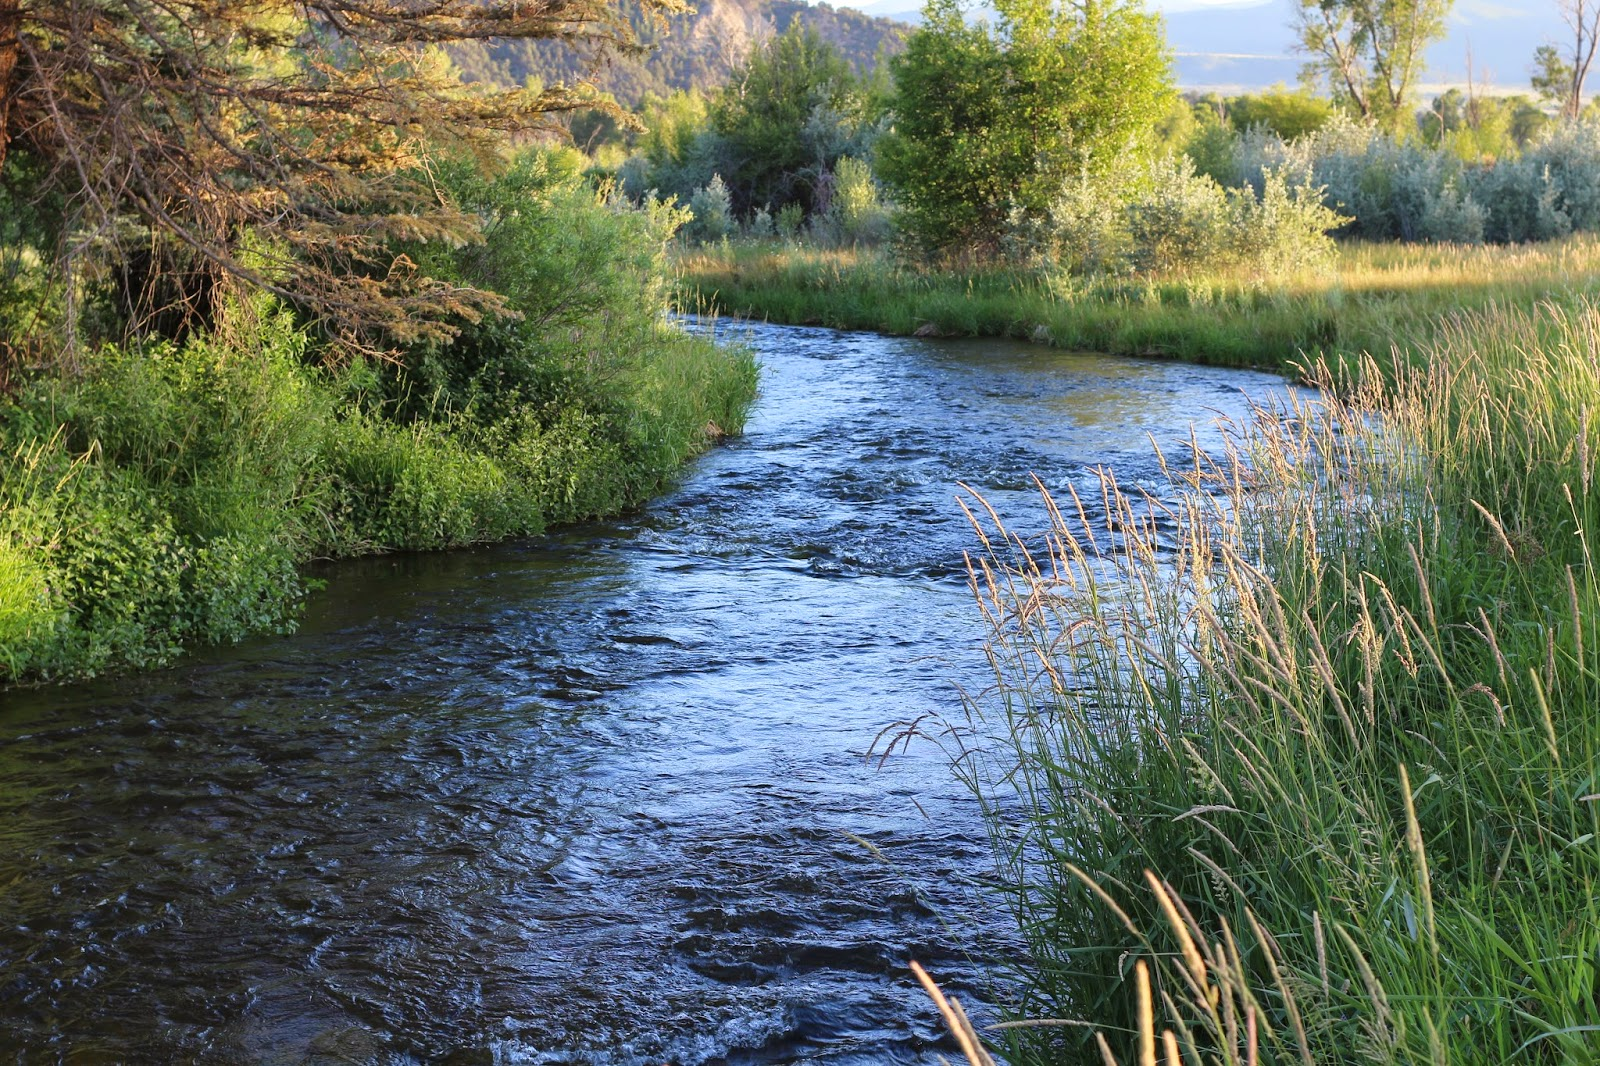 Roaring+fork+river+fly+fishing+with+Jay+Scott+Outdoors+22.JPG